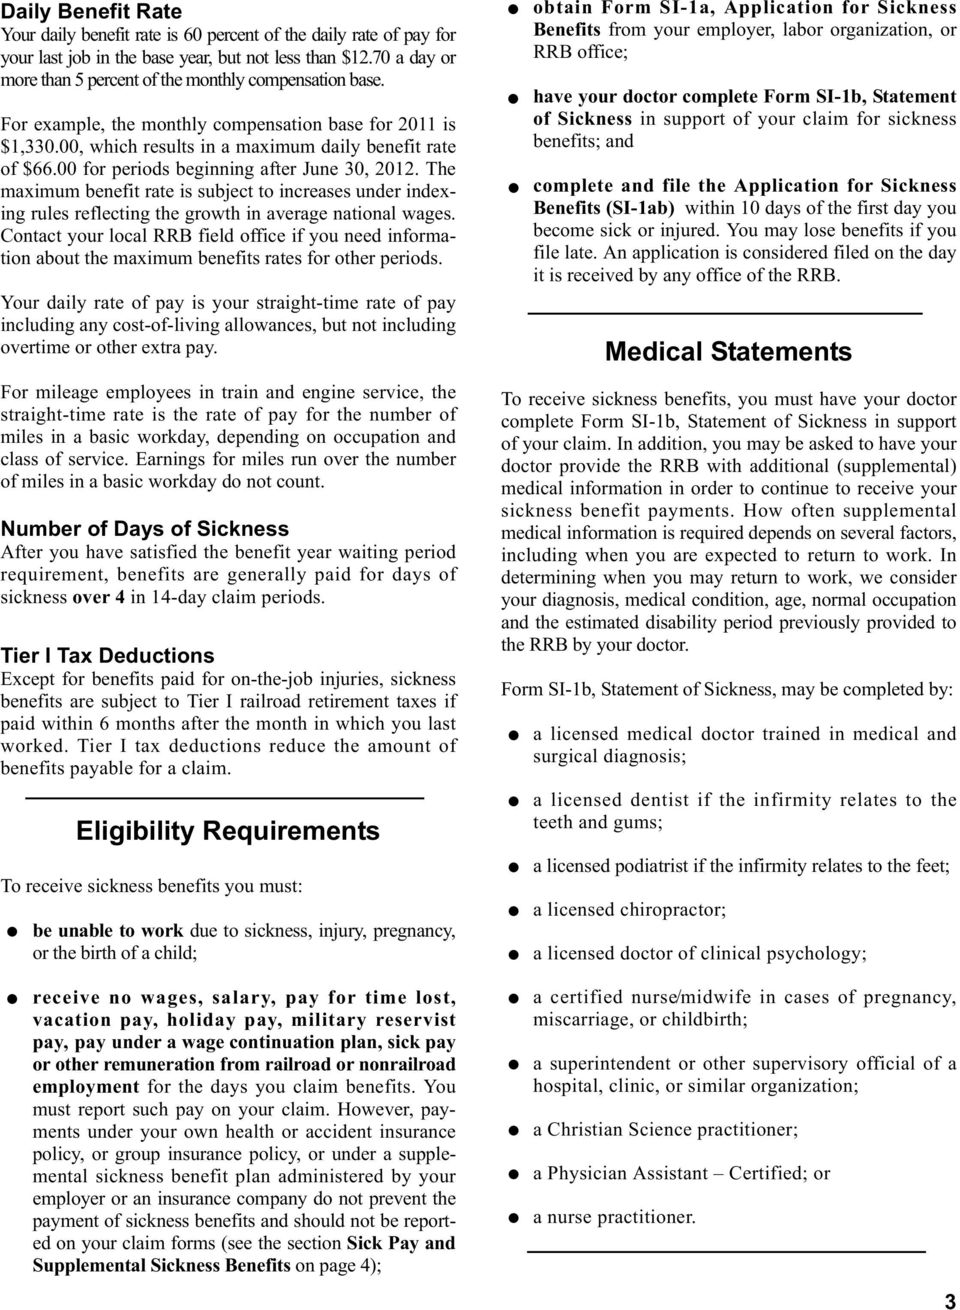 Sickness Benefits for Railroad Employees - PDF